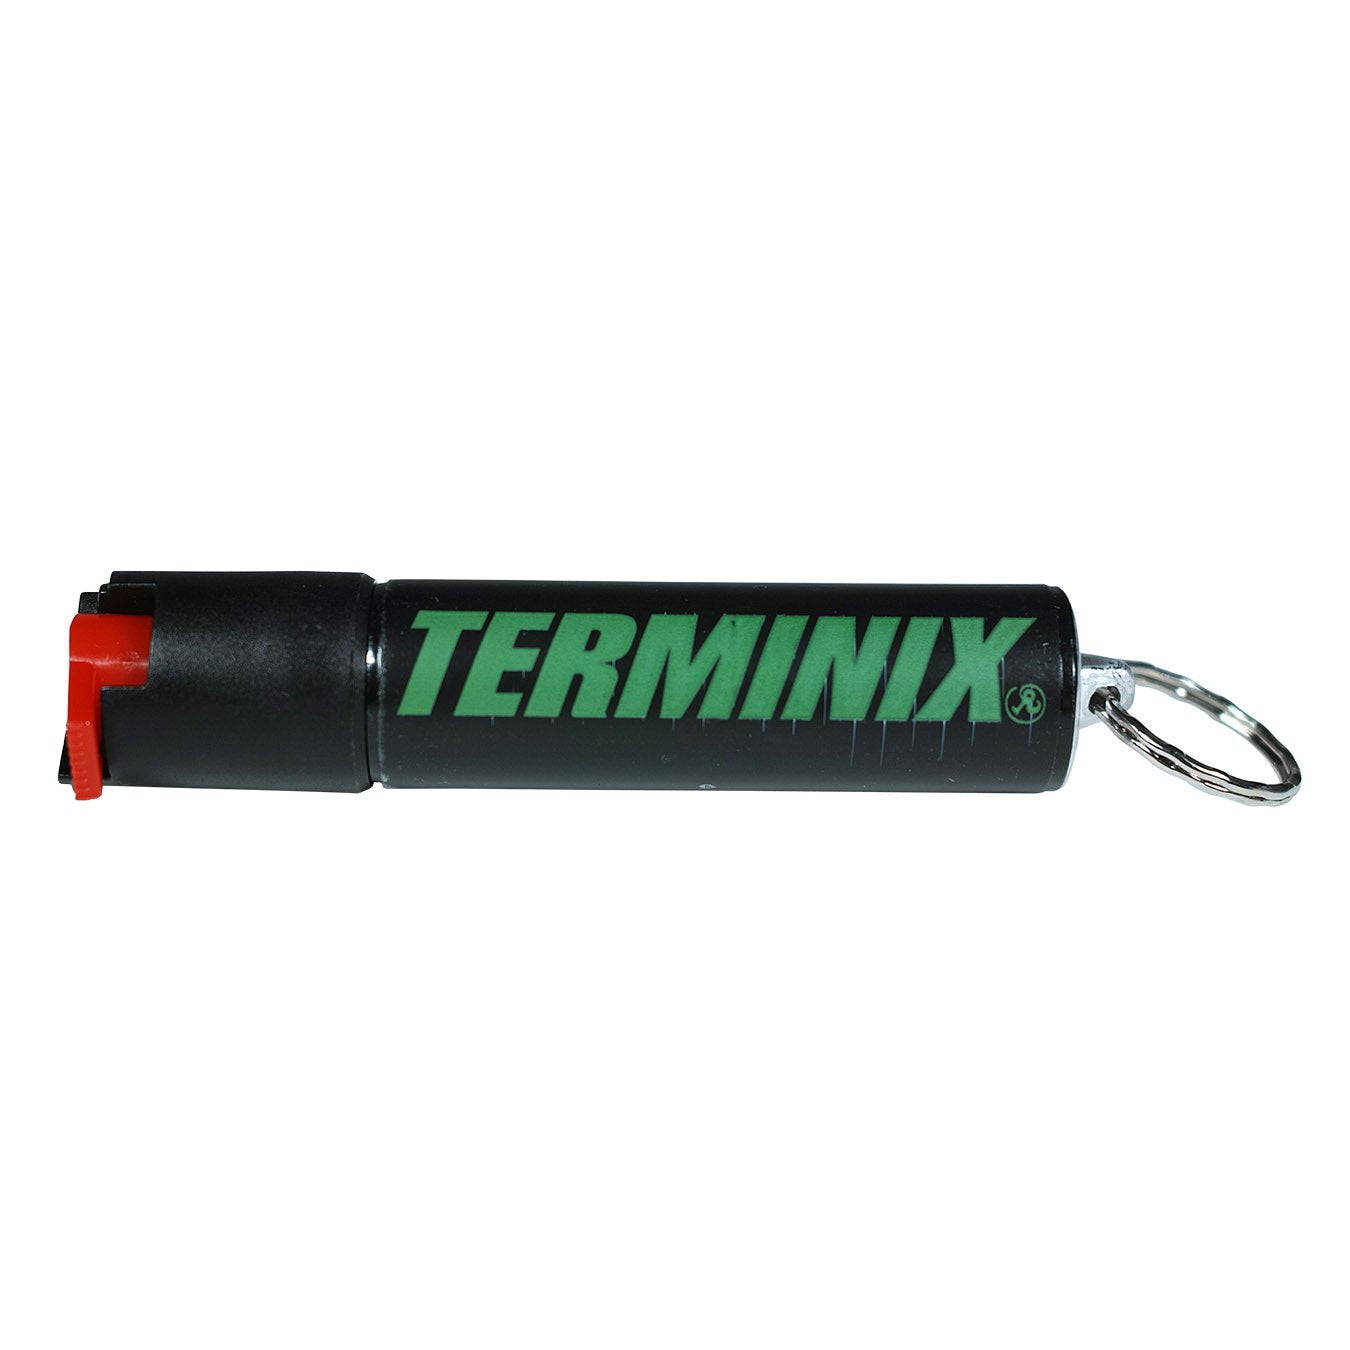 Terminix x Richardson Pepper Spray